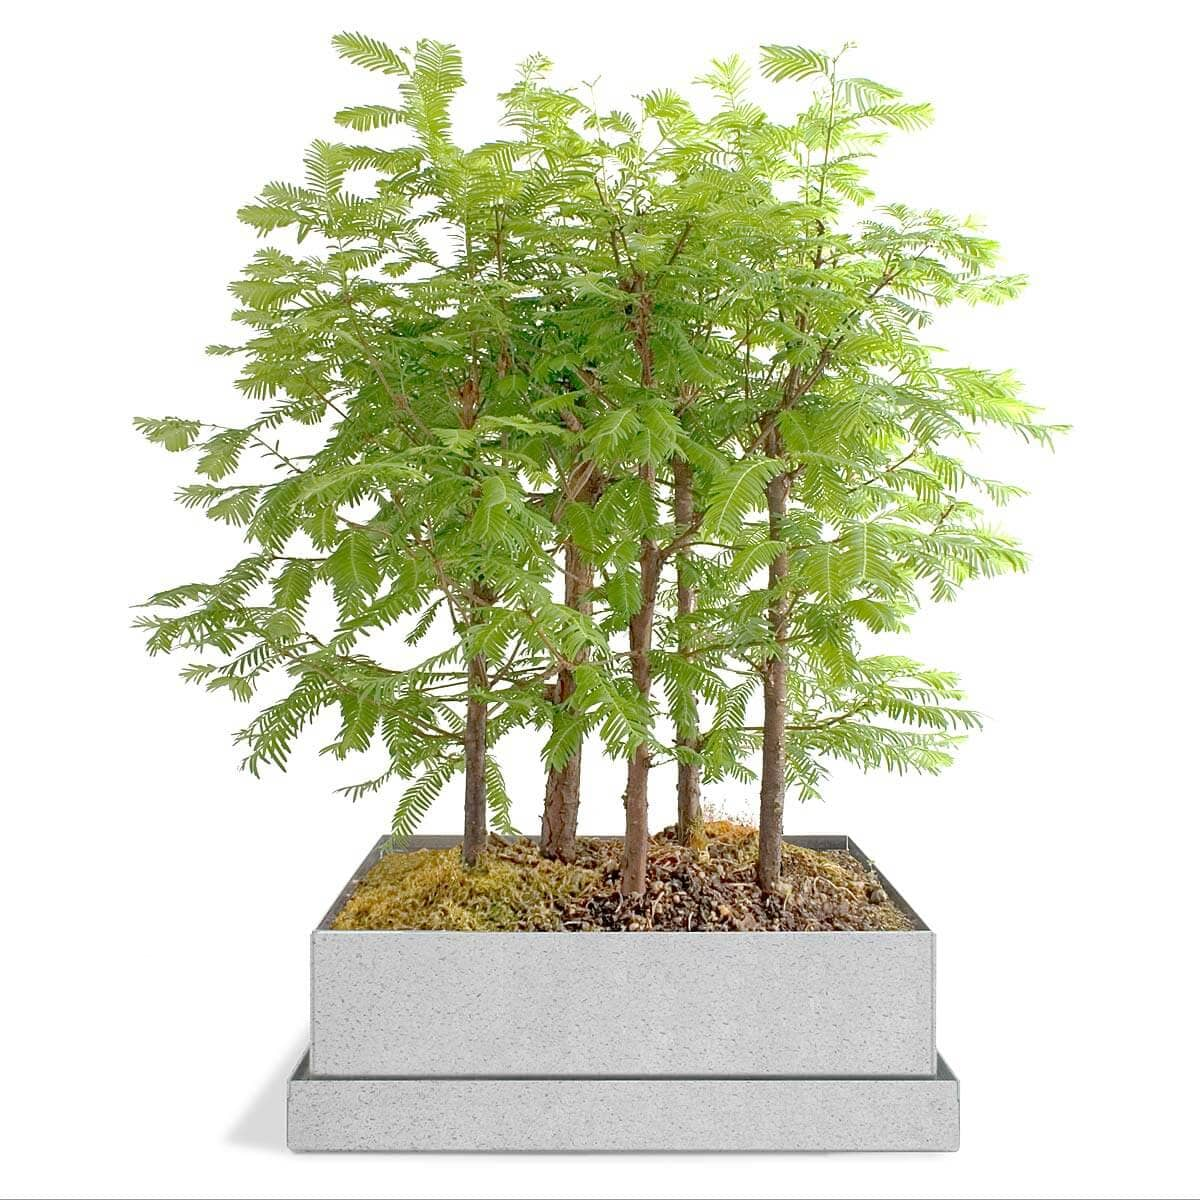 Bonsai Tree Gift Set